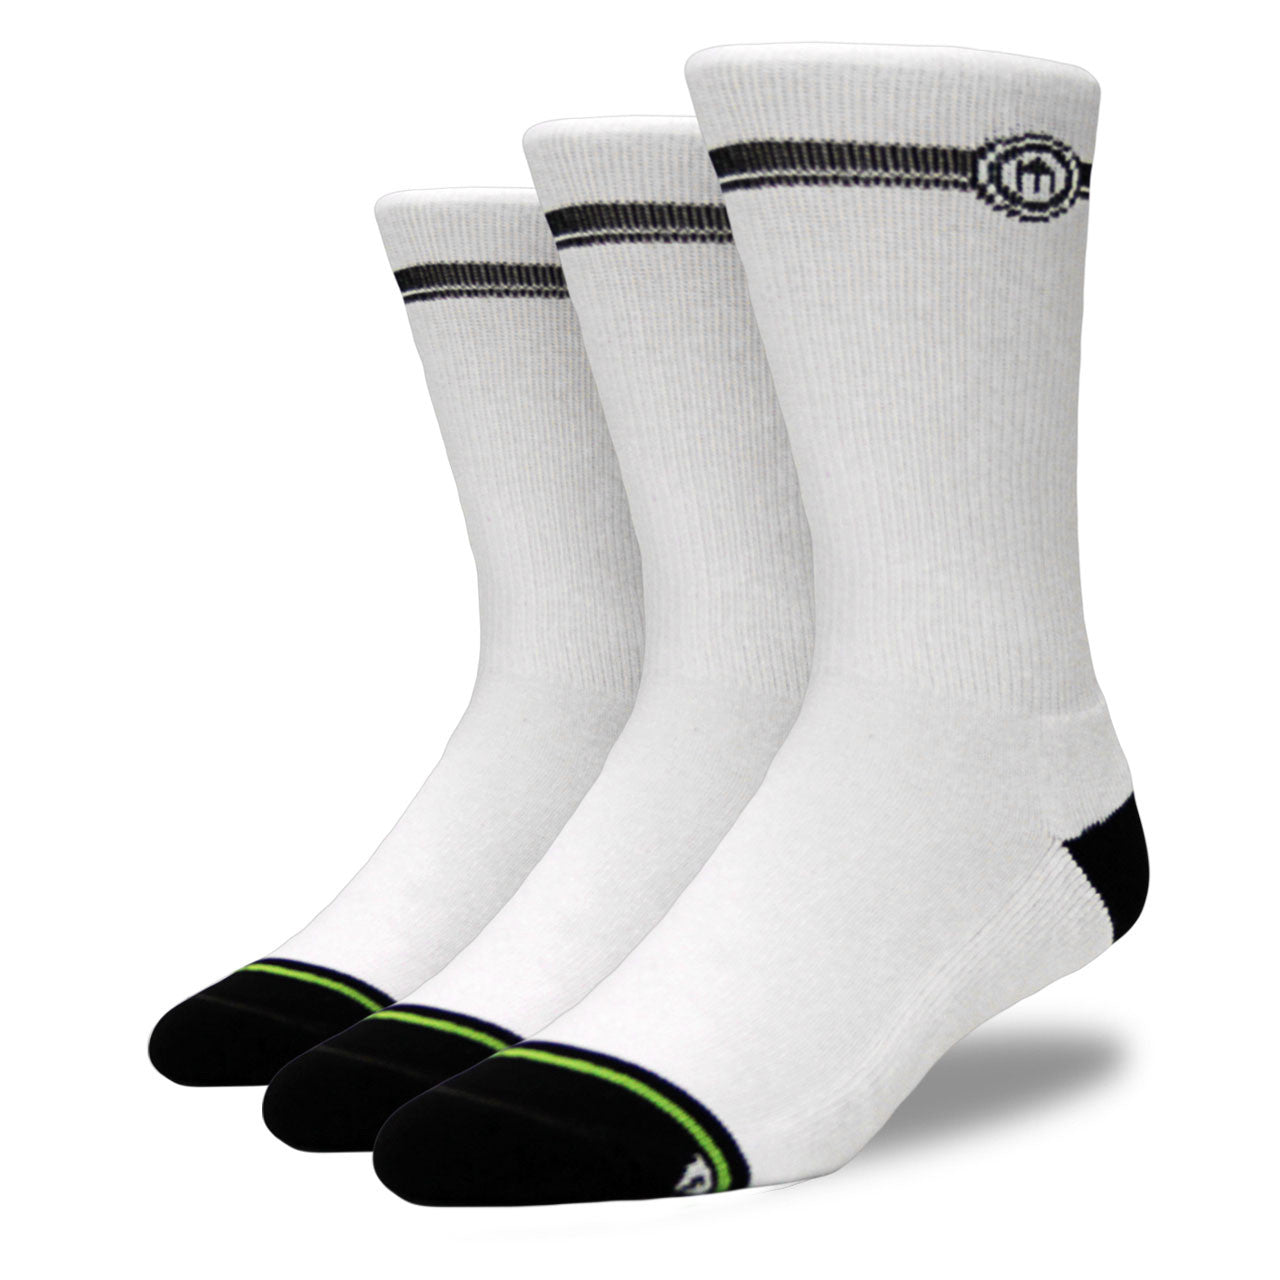 ea77a6f4b Mitscoots Outfitters - Mens White Crew Cut Socks 3 pack